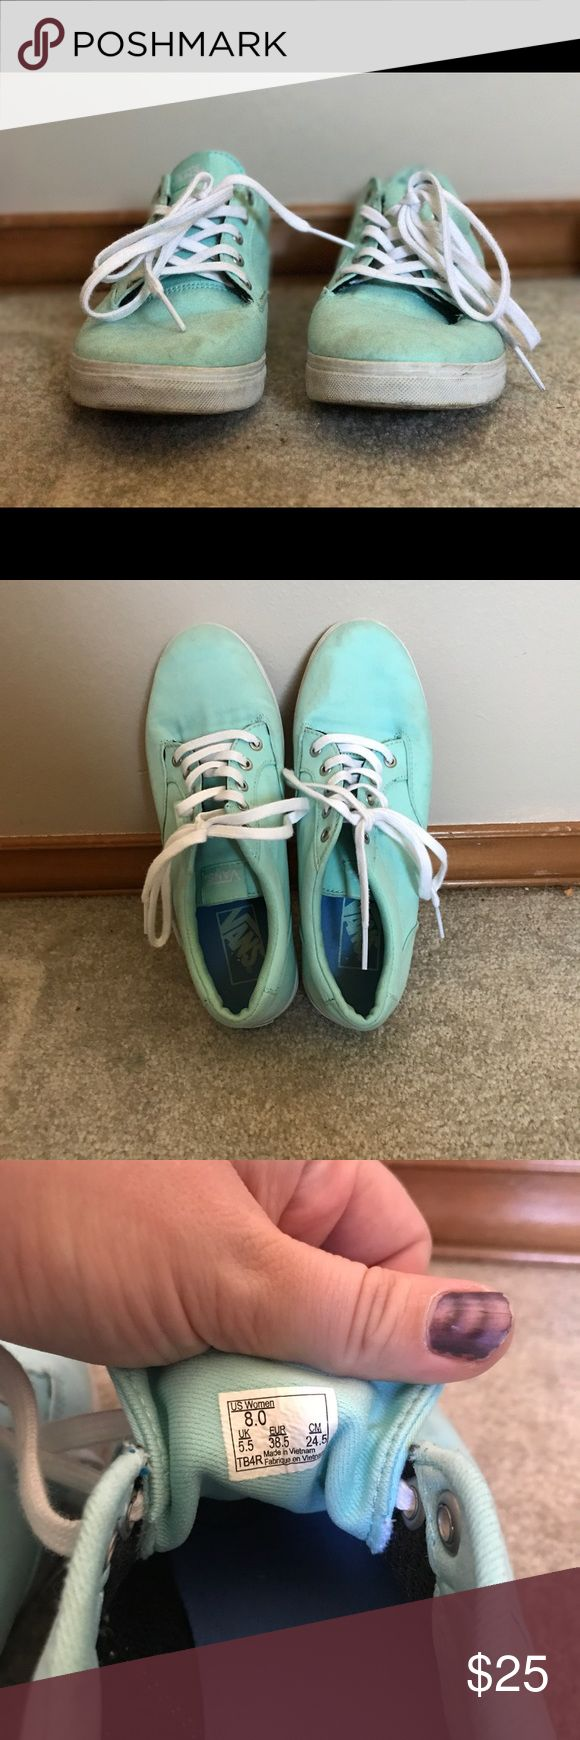 🎄Tiffany blue vans Worn just a few times so integrity is great just needs a wash! Size 8 with the plush tops Vans Shoes Sneakers